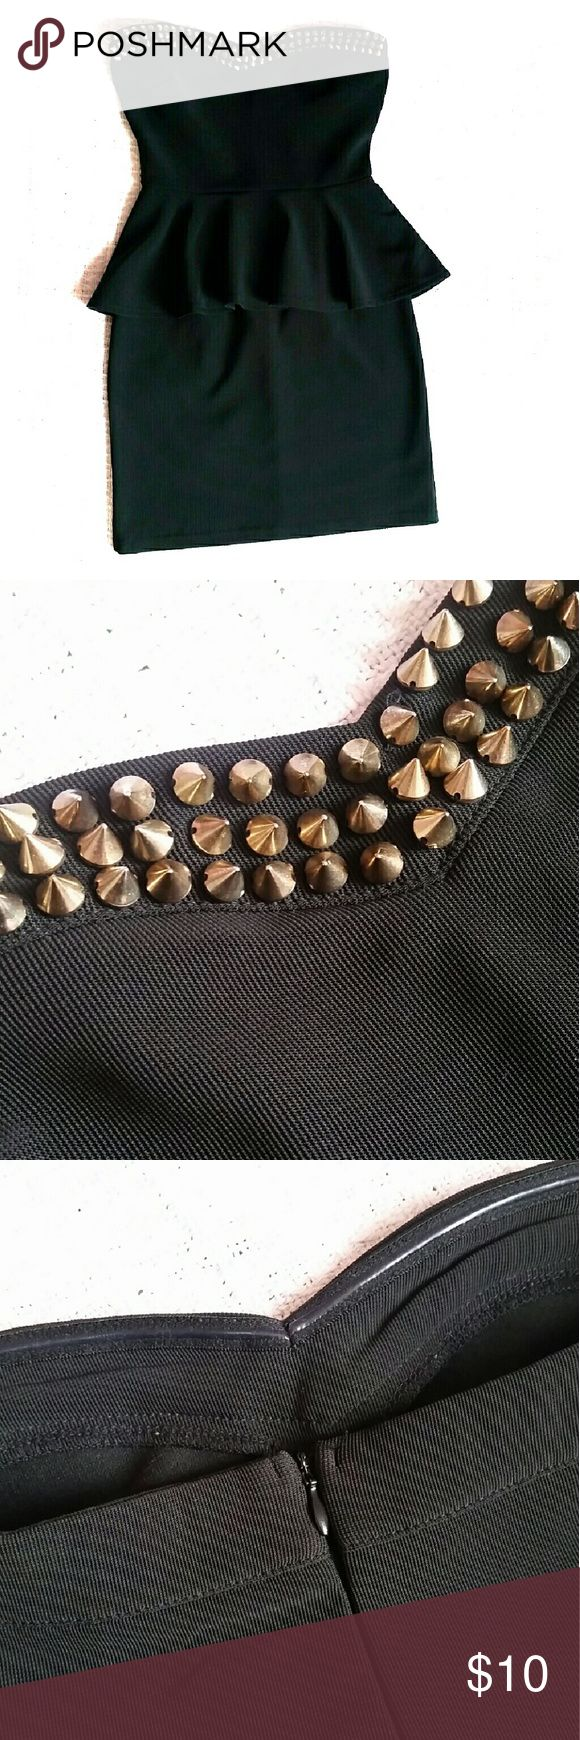 "Strapless Black Peplum Dress *Forever21, tagged Nasty Gal for exposure*  Strapless black peplum dress with ""vintage gold"" round spike studs and hidden zipper closure. Sweetheart bust. Peplum skirt in front and back. No missing studs. Rubber grip on inner bust. Worn only 3x Nasty Gal Dresses Mini"